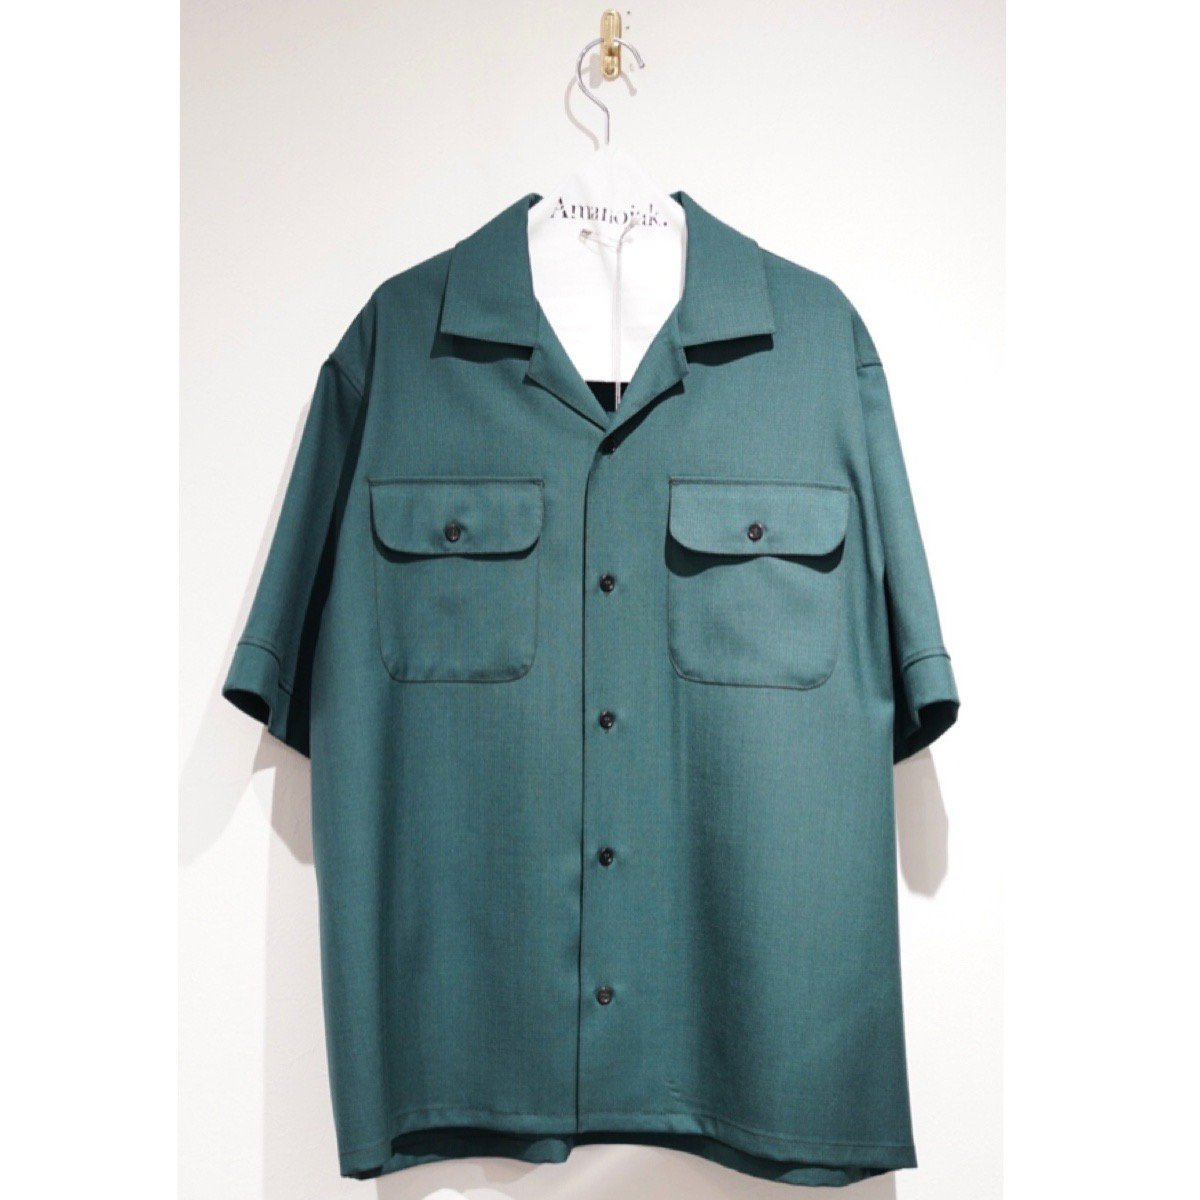 MARNI-RIP STOP WOOSTED WOOL O/C S/S SHIRTS GREEN<br>(在庫あり)